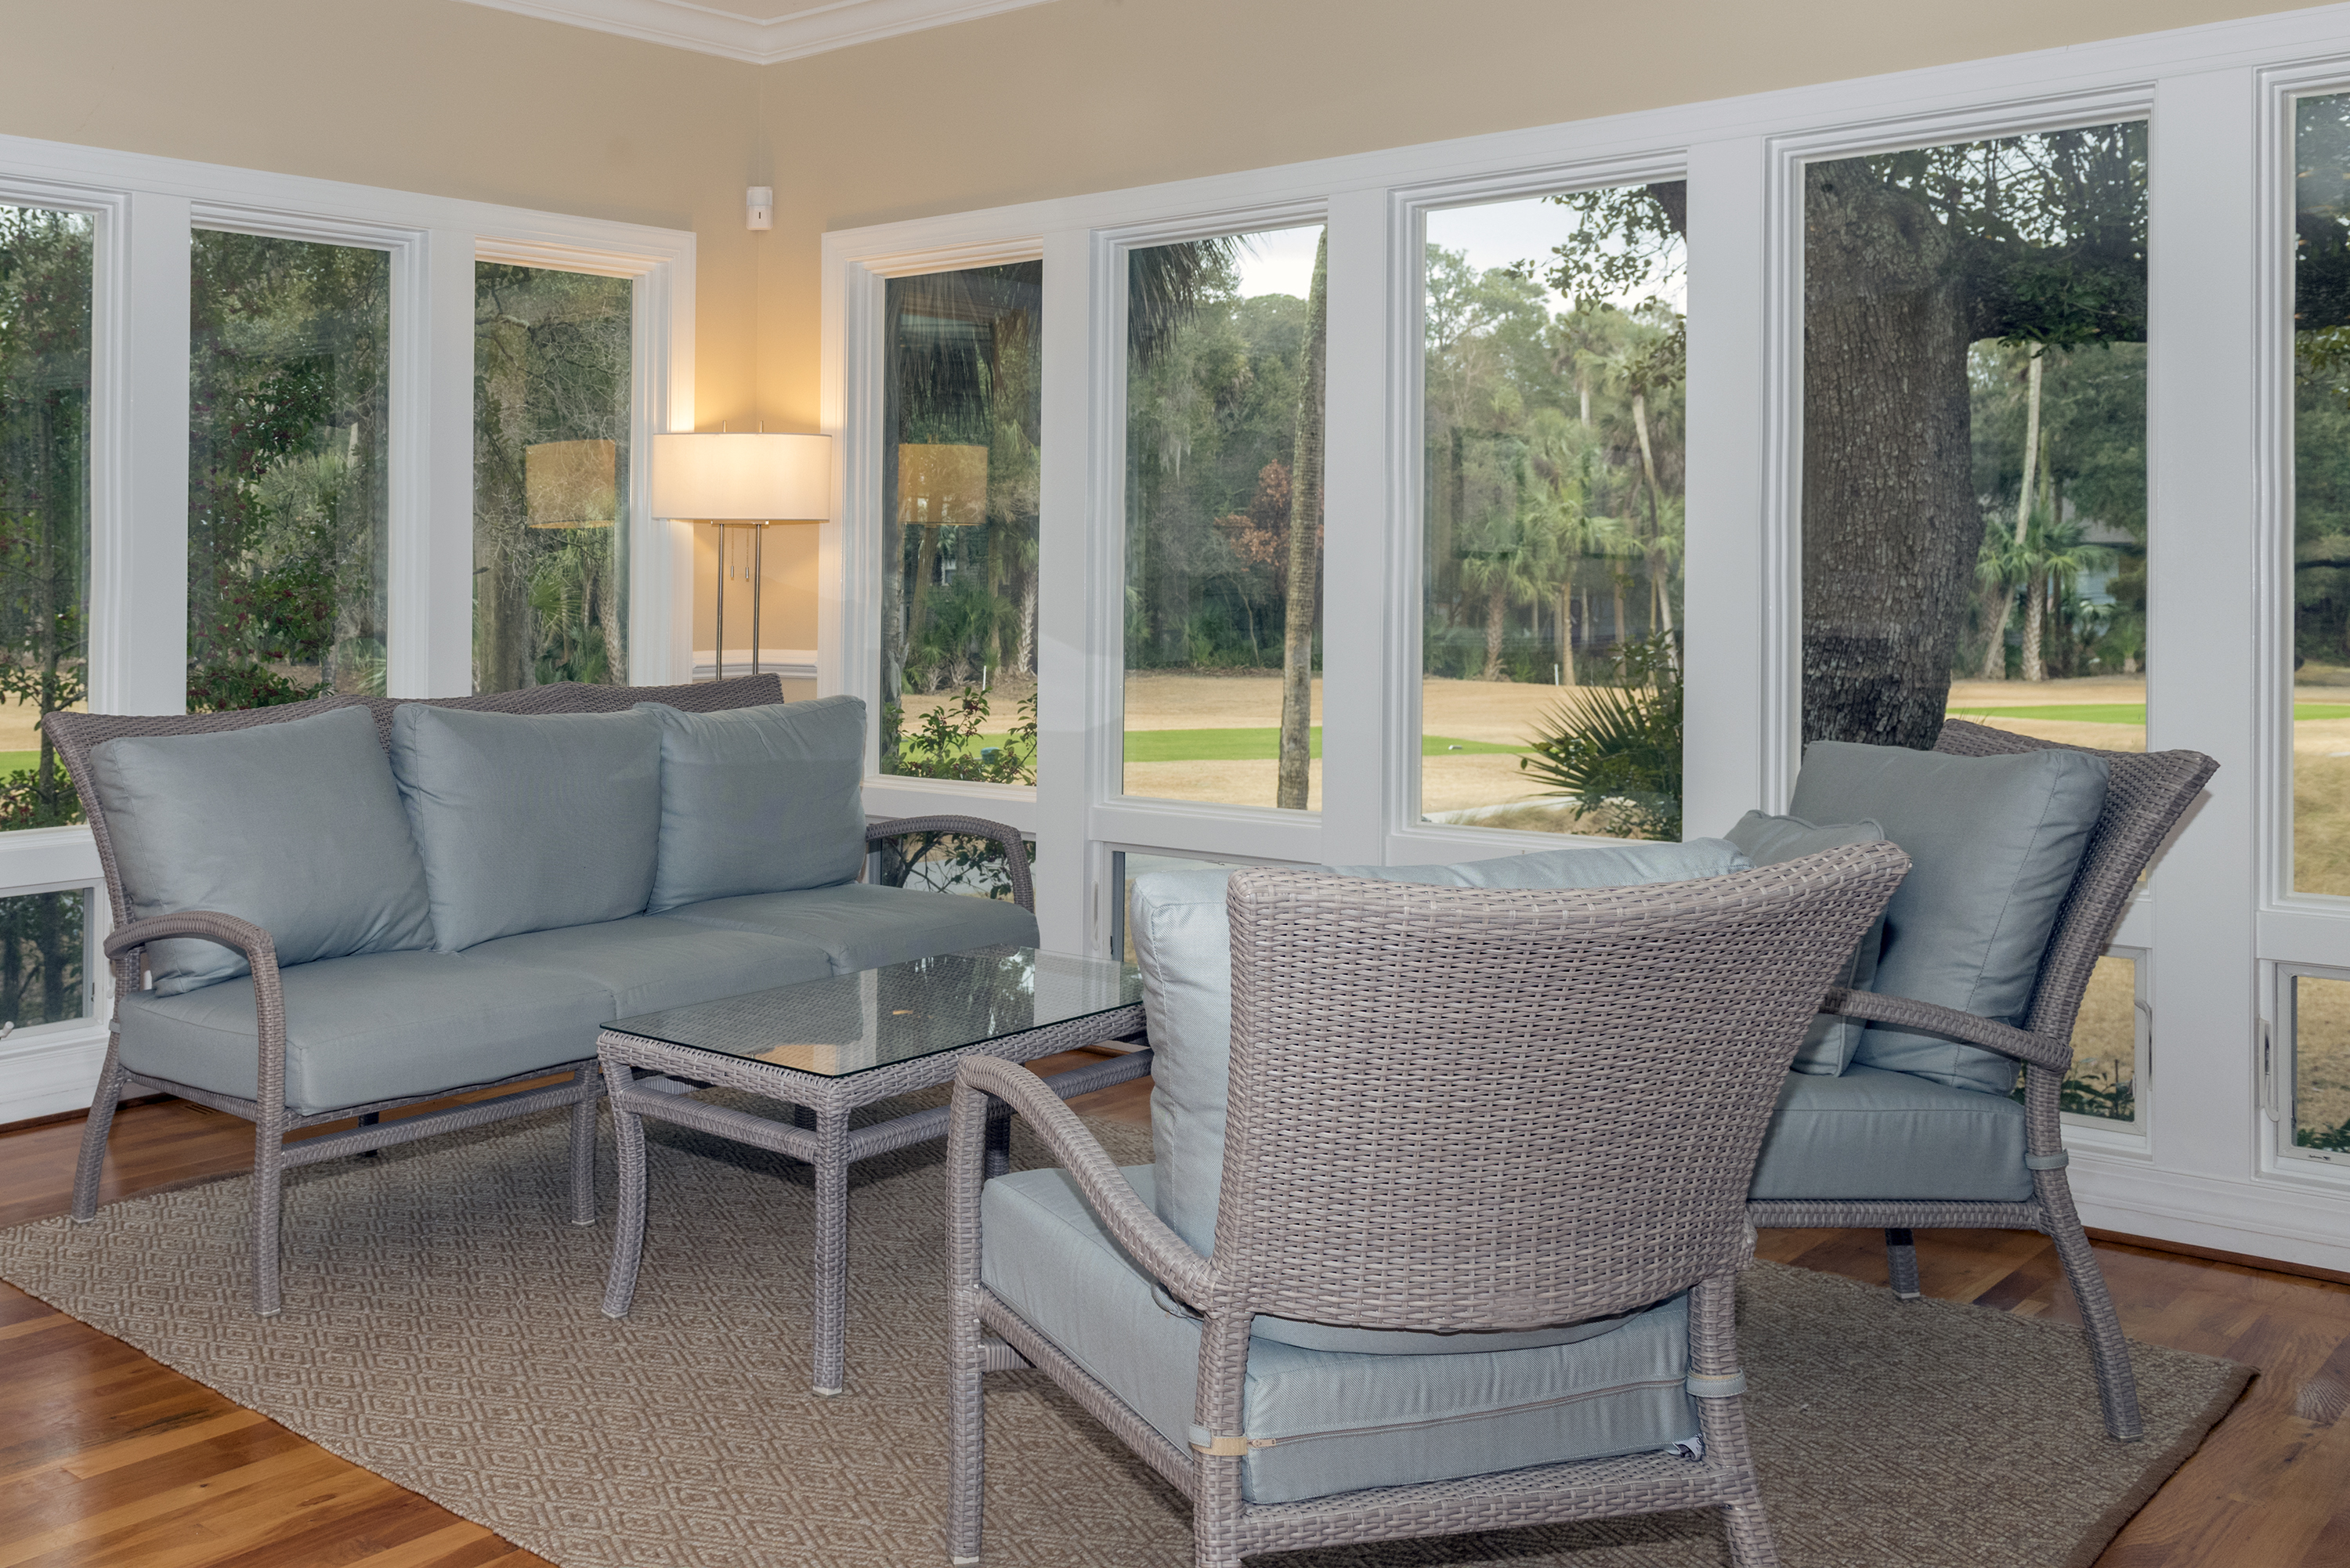 Enjoy conversation with your guests in the sun room with great views.